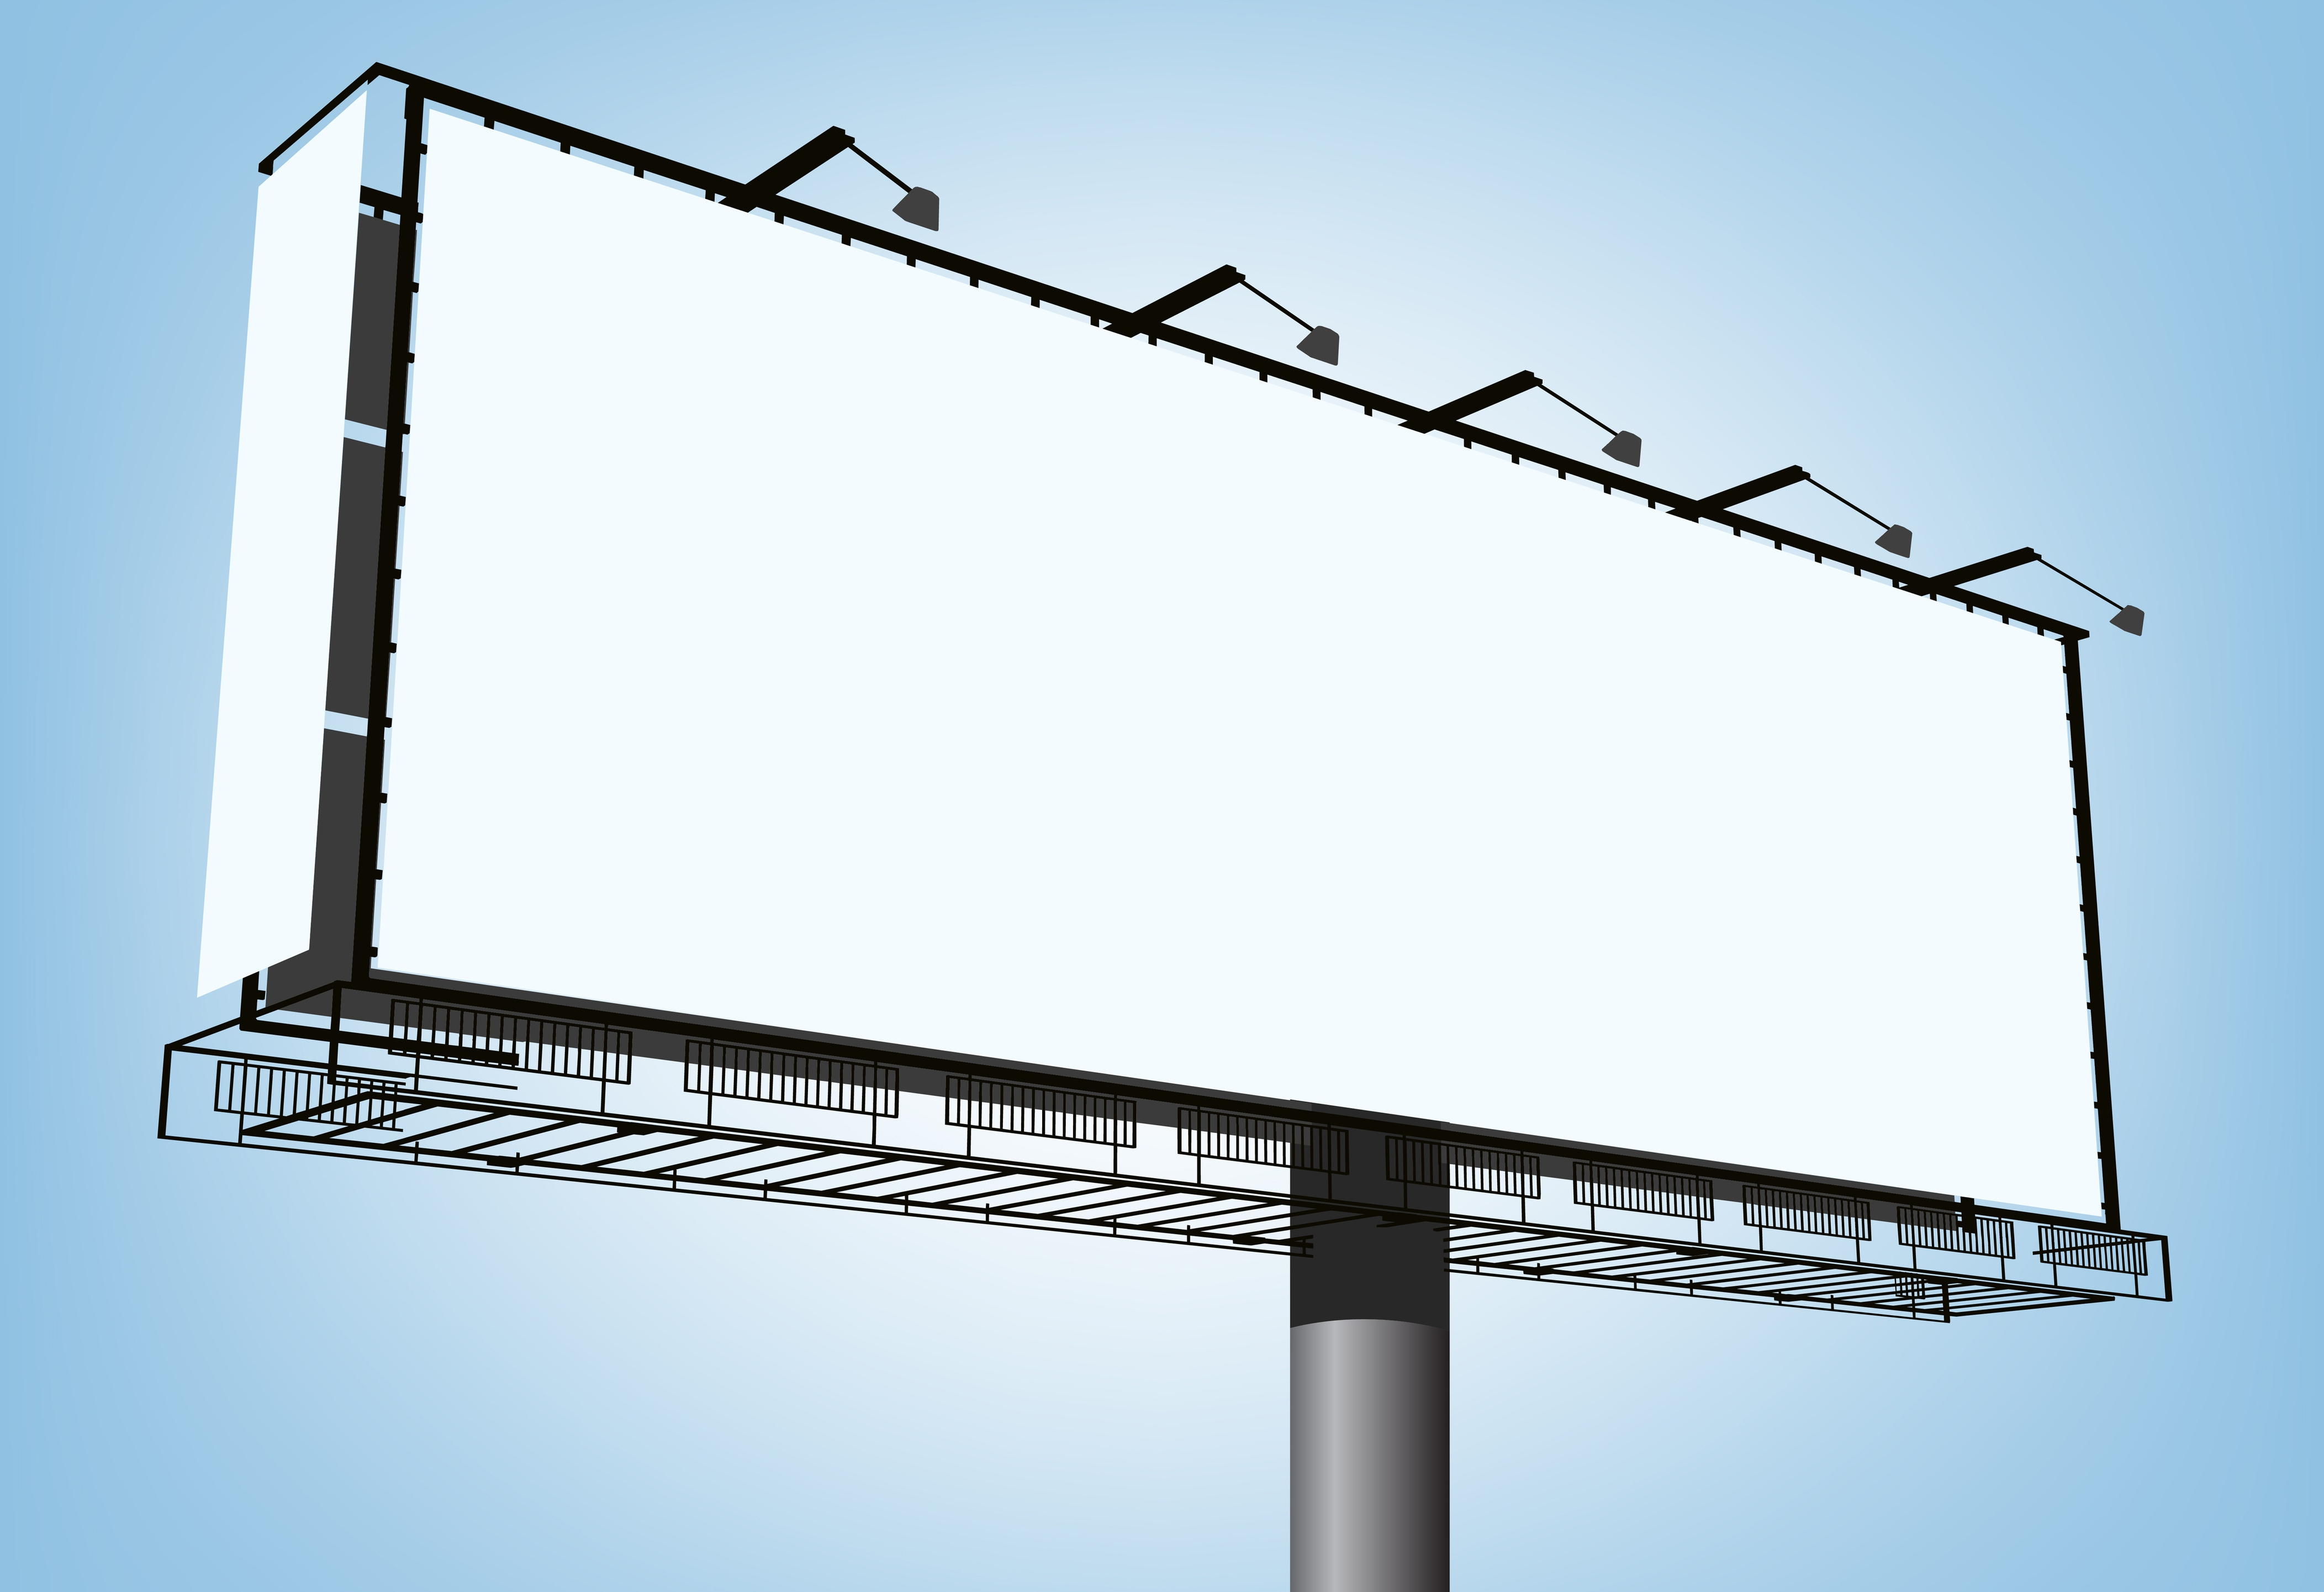 One_of_the_largest_operators_of_outdoor_advertising_have_not_paid_for_the_shields